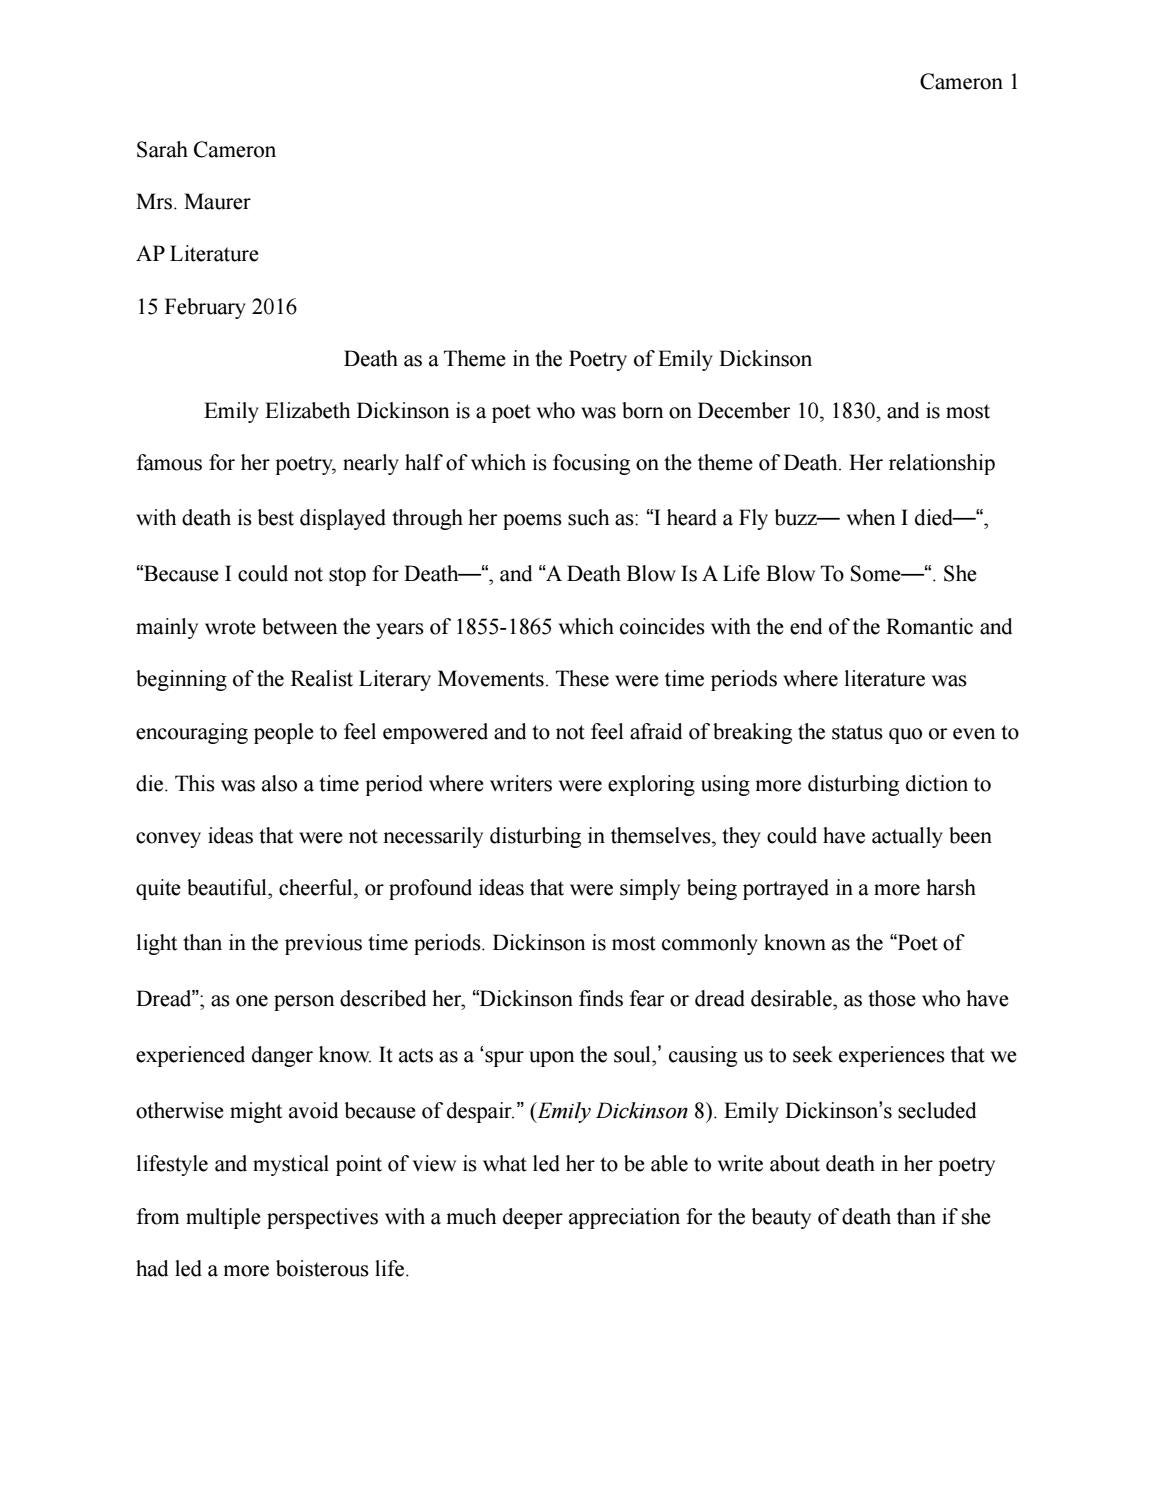 Emily dickinson free research paper literature review software tools